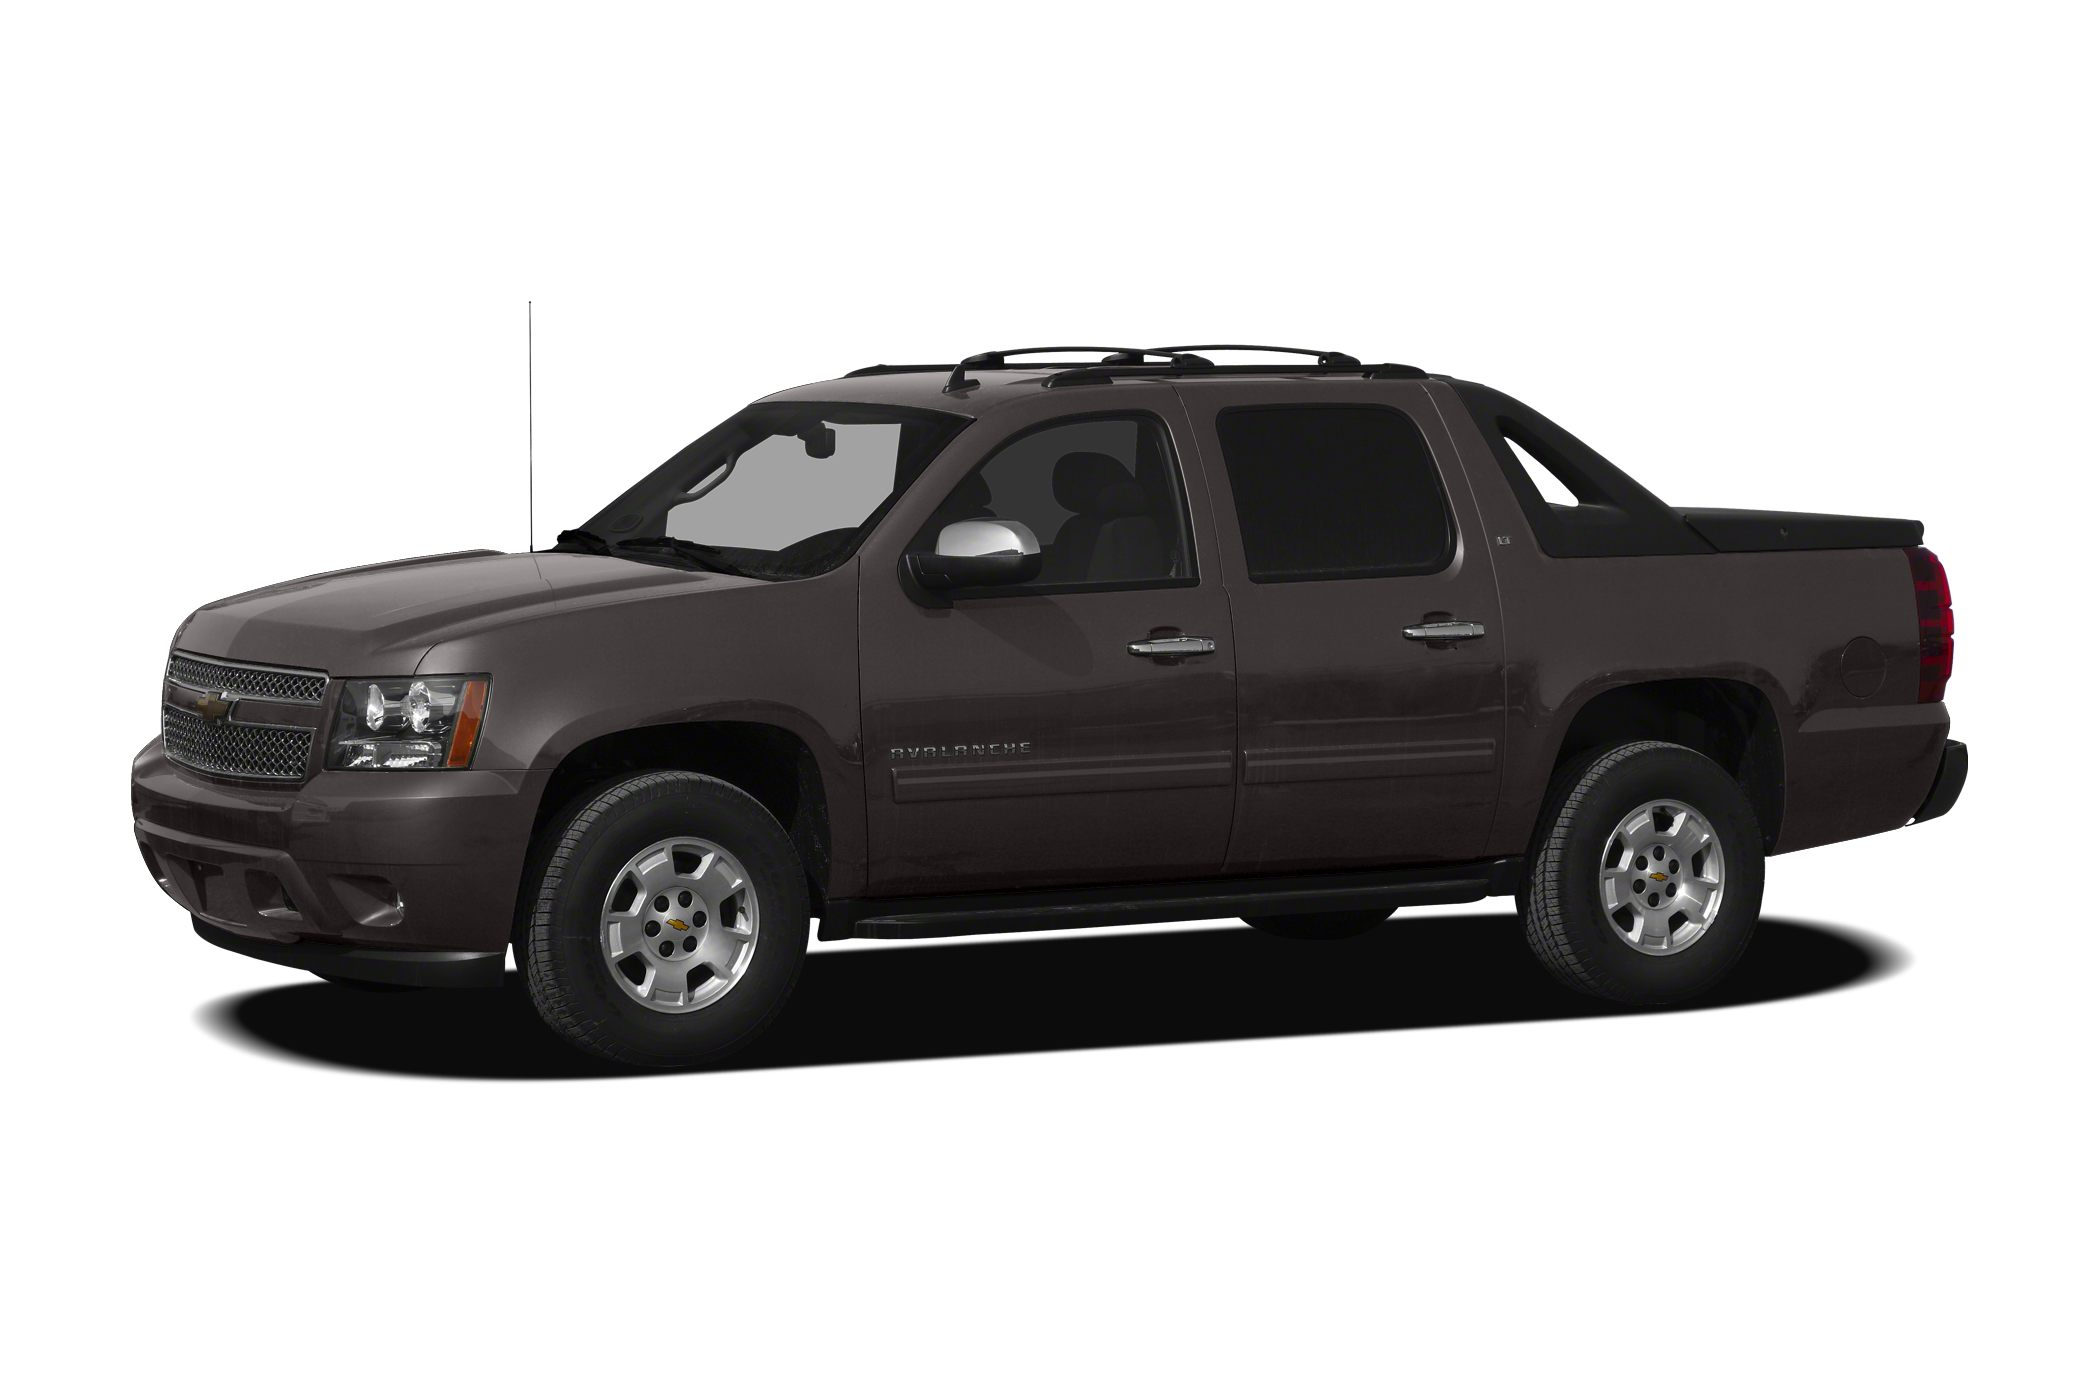 2011 Chevrolet Avalanche 1500 LTZ Crew Cab Pickup for sale in Lafayette for $33,787 with 53,125 miles